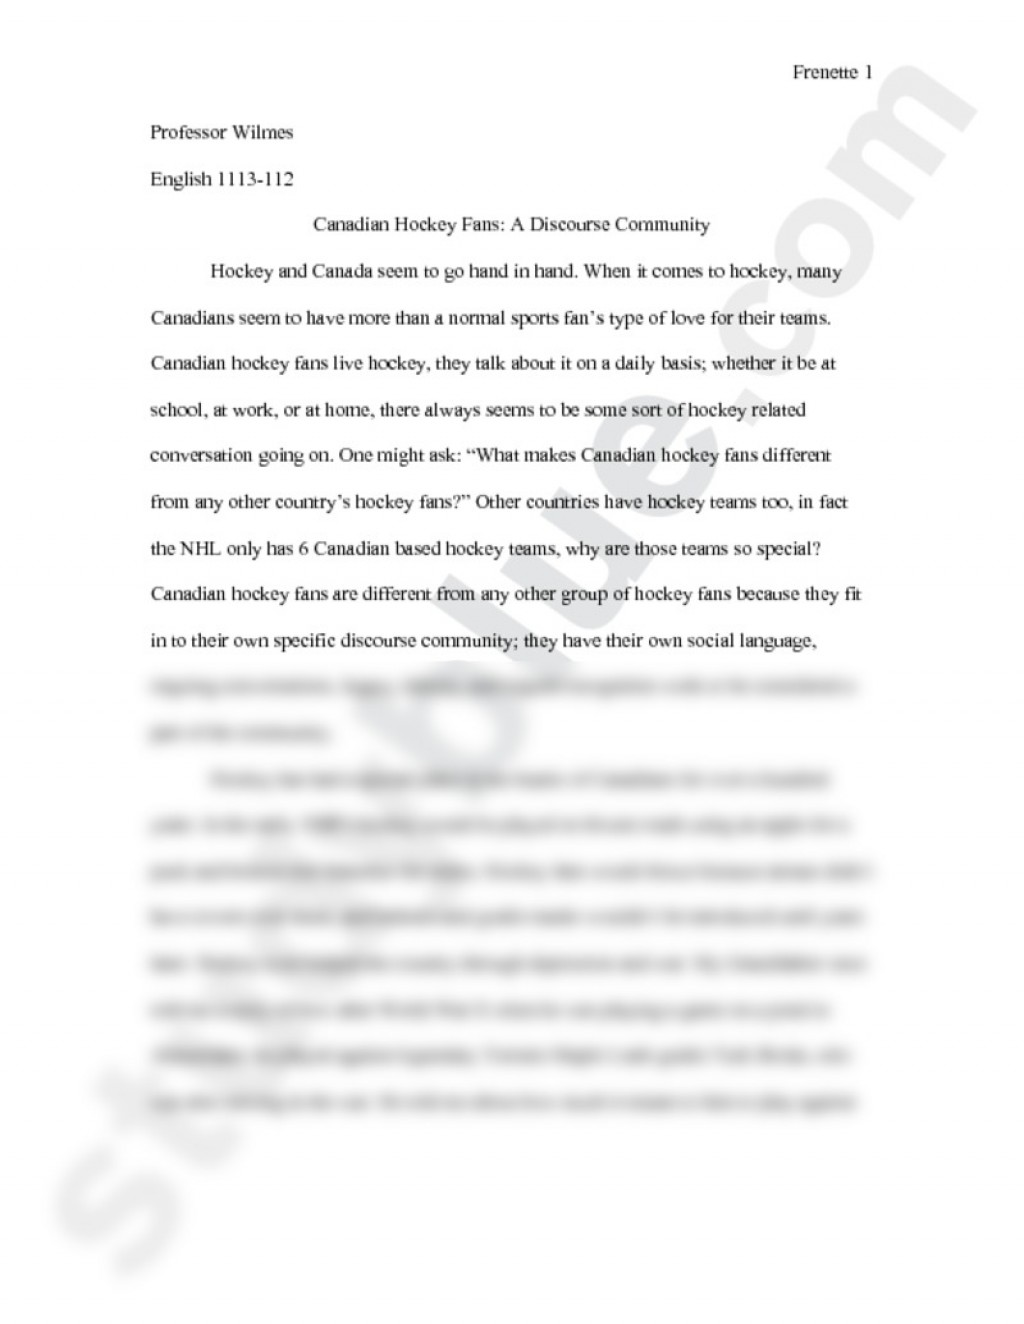 016 Preview0 Movie Review Essay Stirring Example Examples How To Write A Film Paper Samples Large